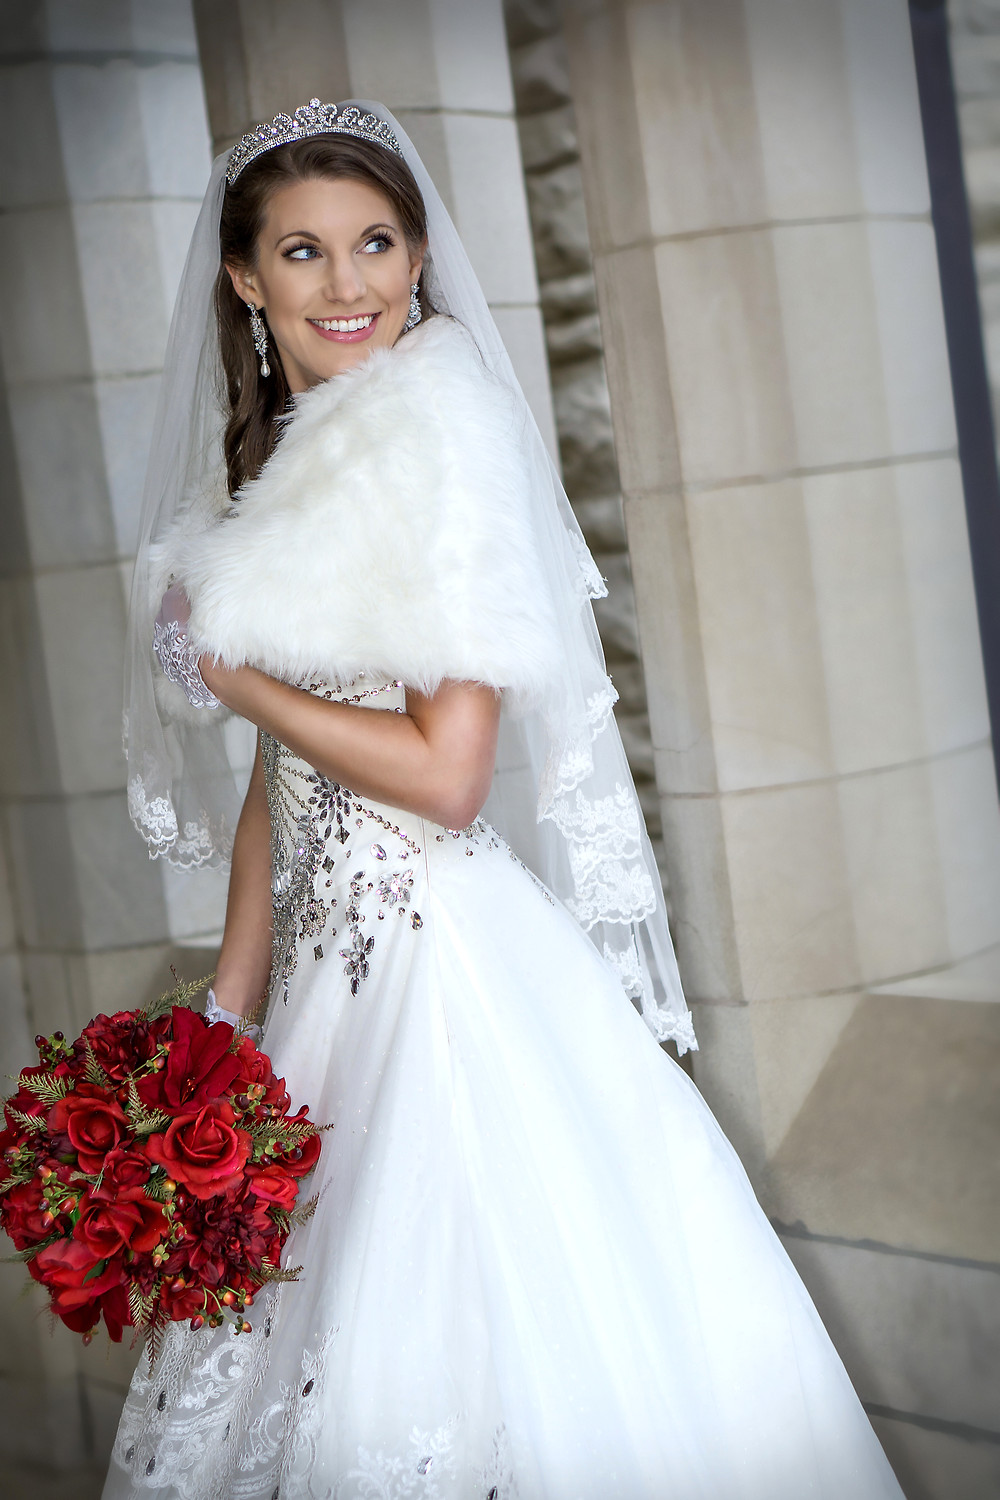 Smiling Bride Wearing Fur and Tiara